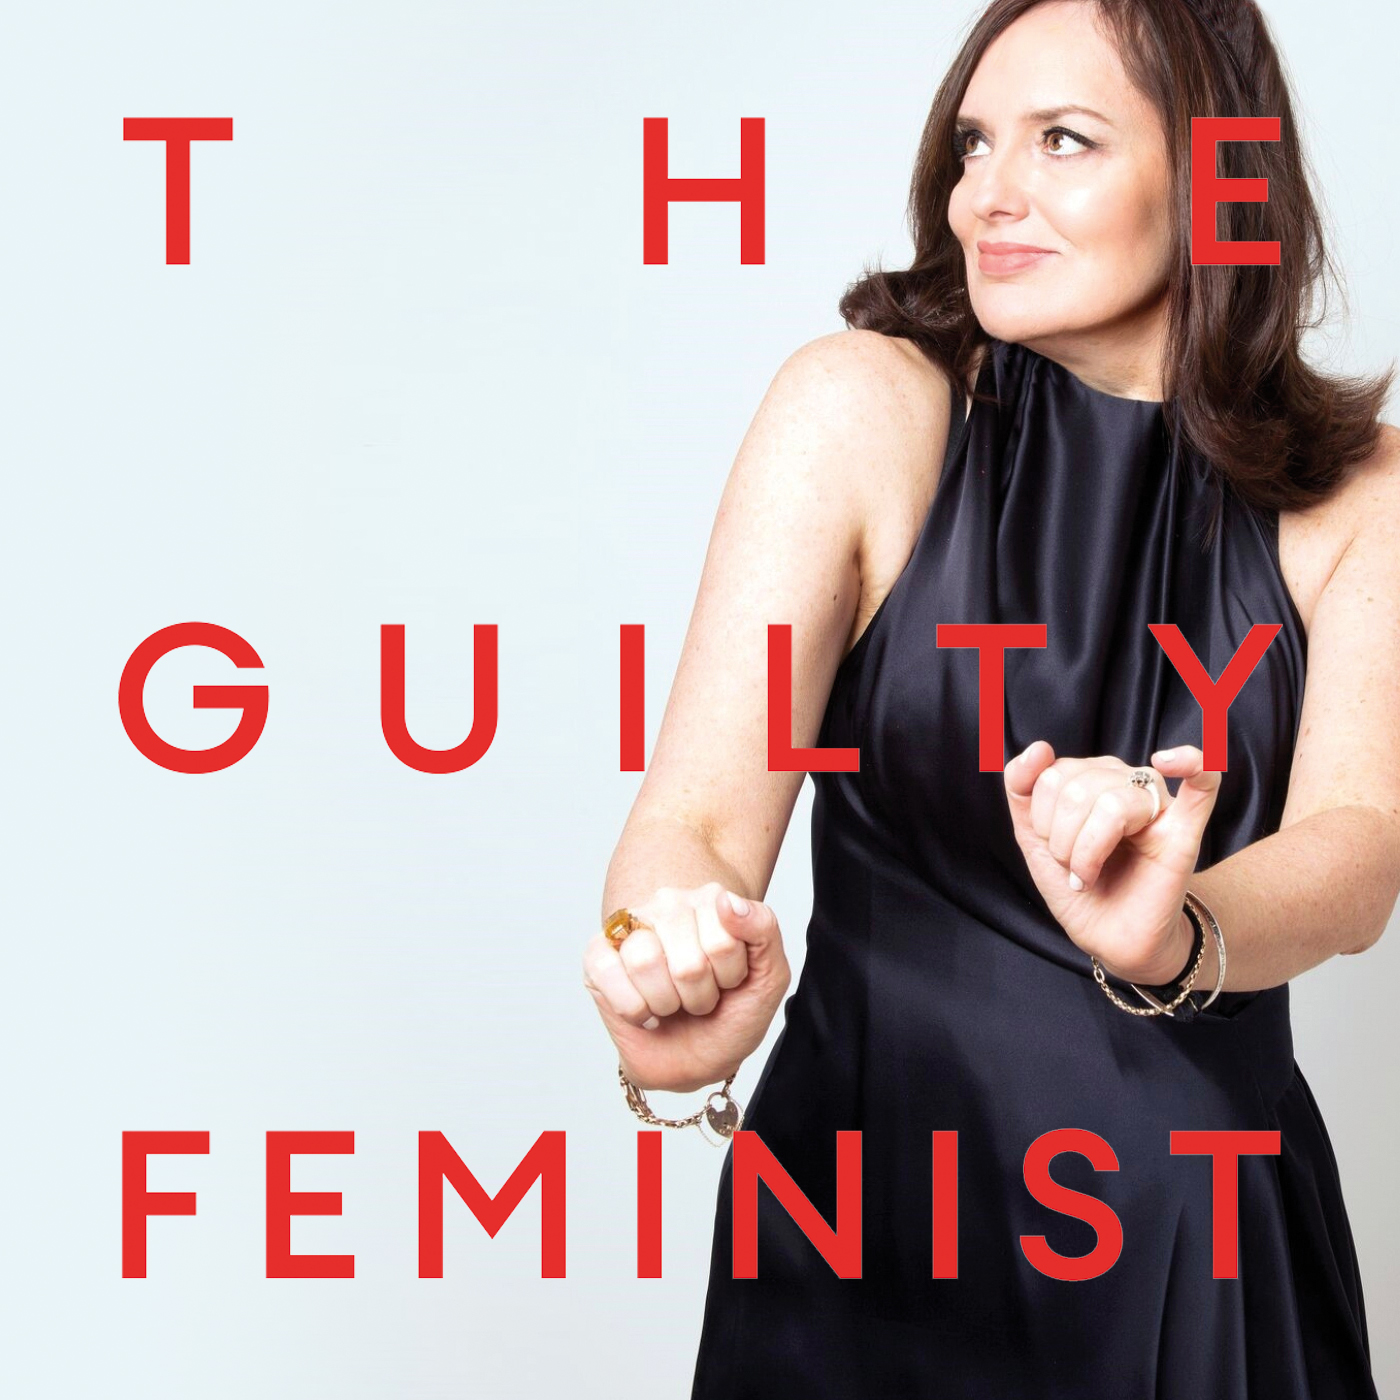 Artwork for Guilty Feminist Tour 2019